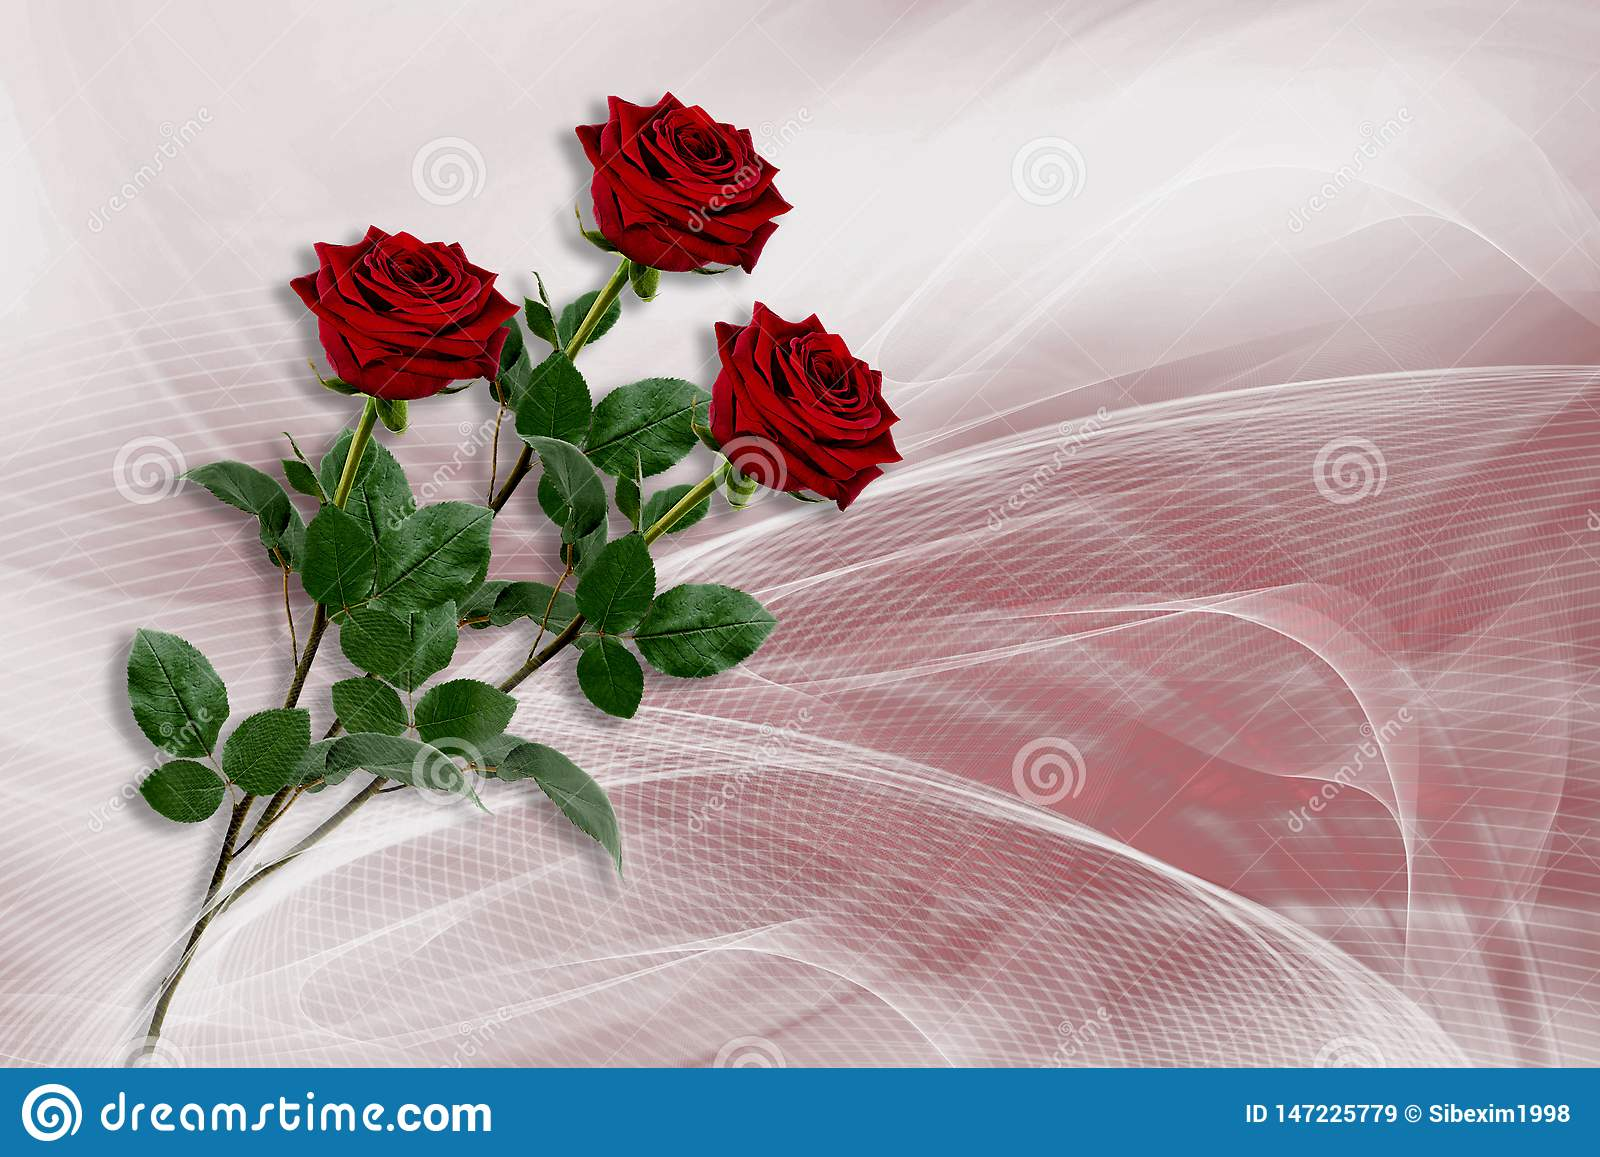 Background with three red roses